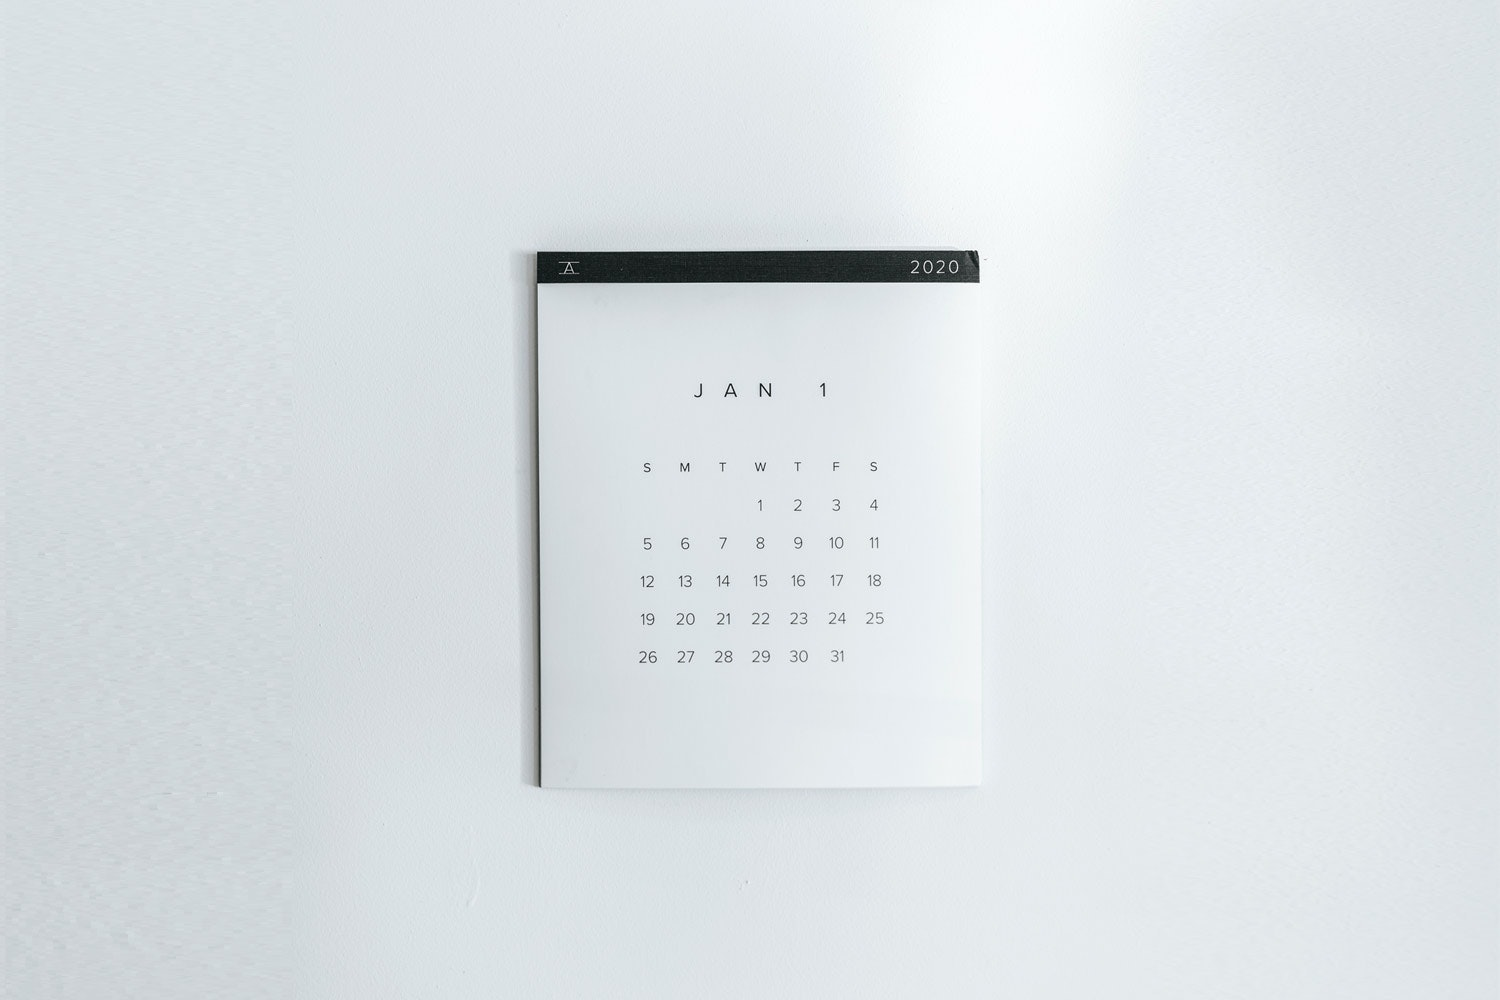 Calendar showing month of January